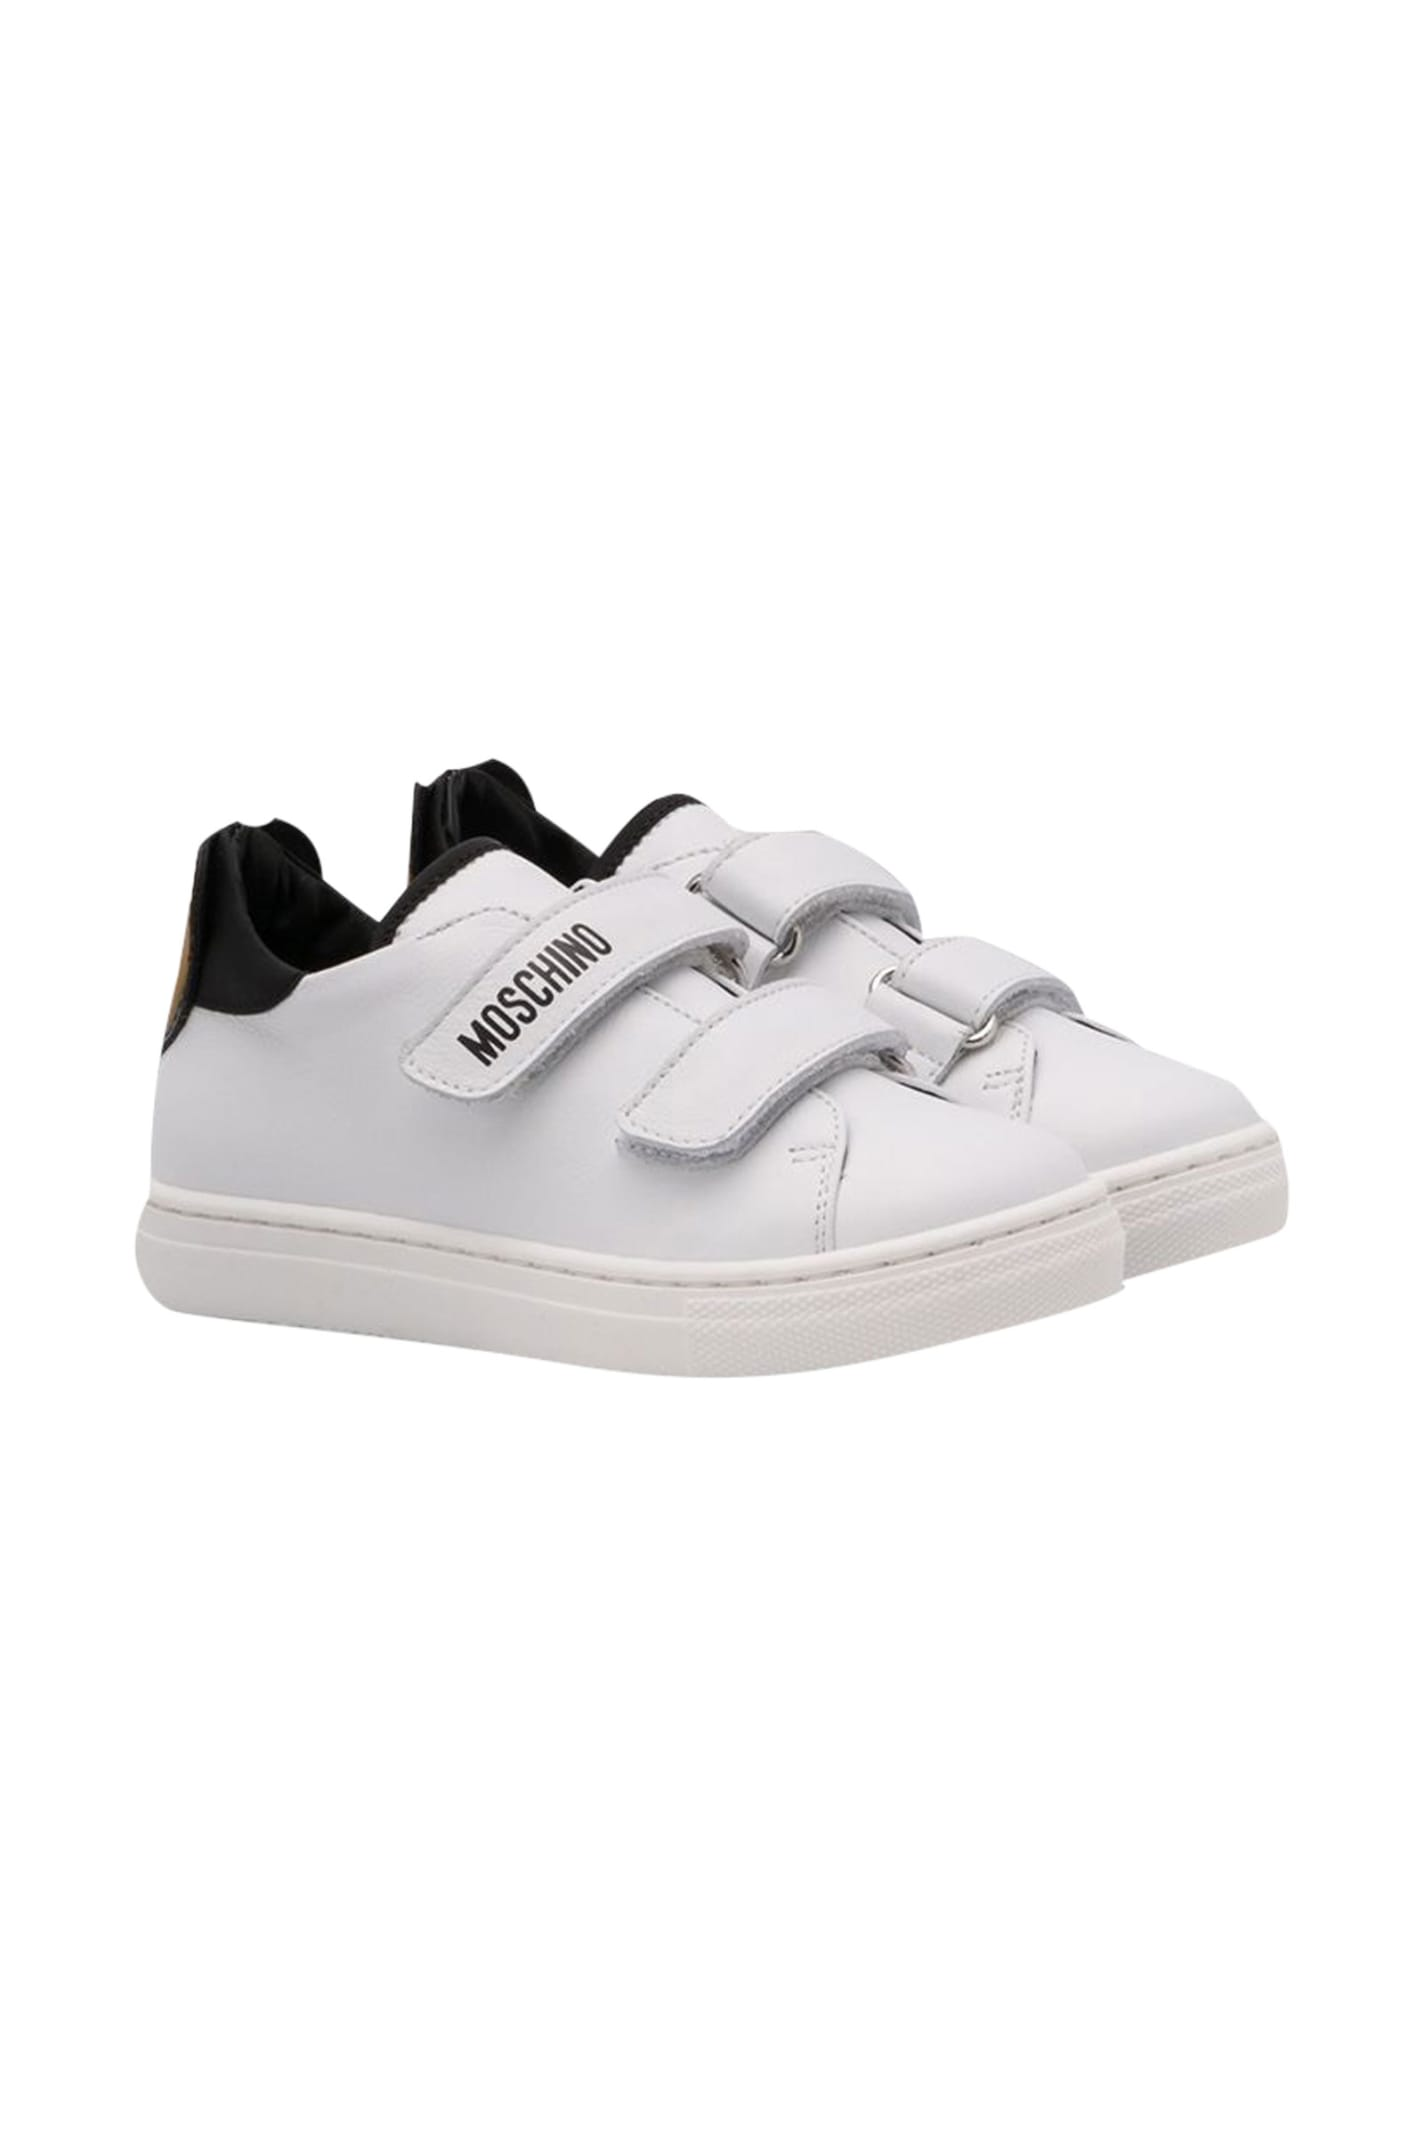 Moschino Shoes   italist, ALWAYS LIKE A